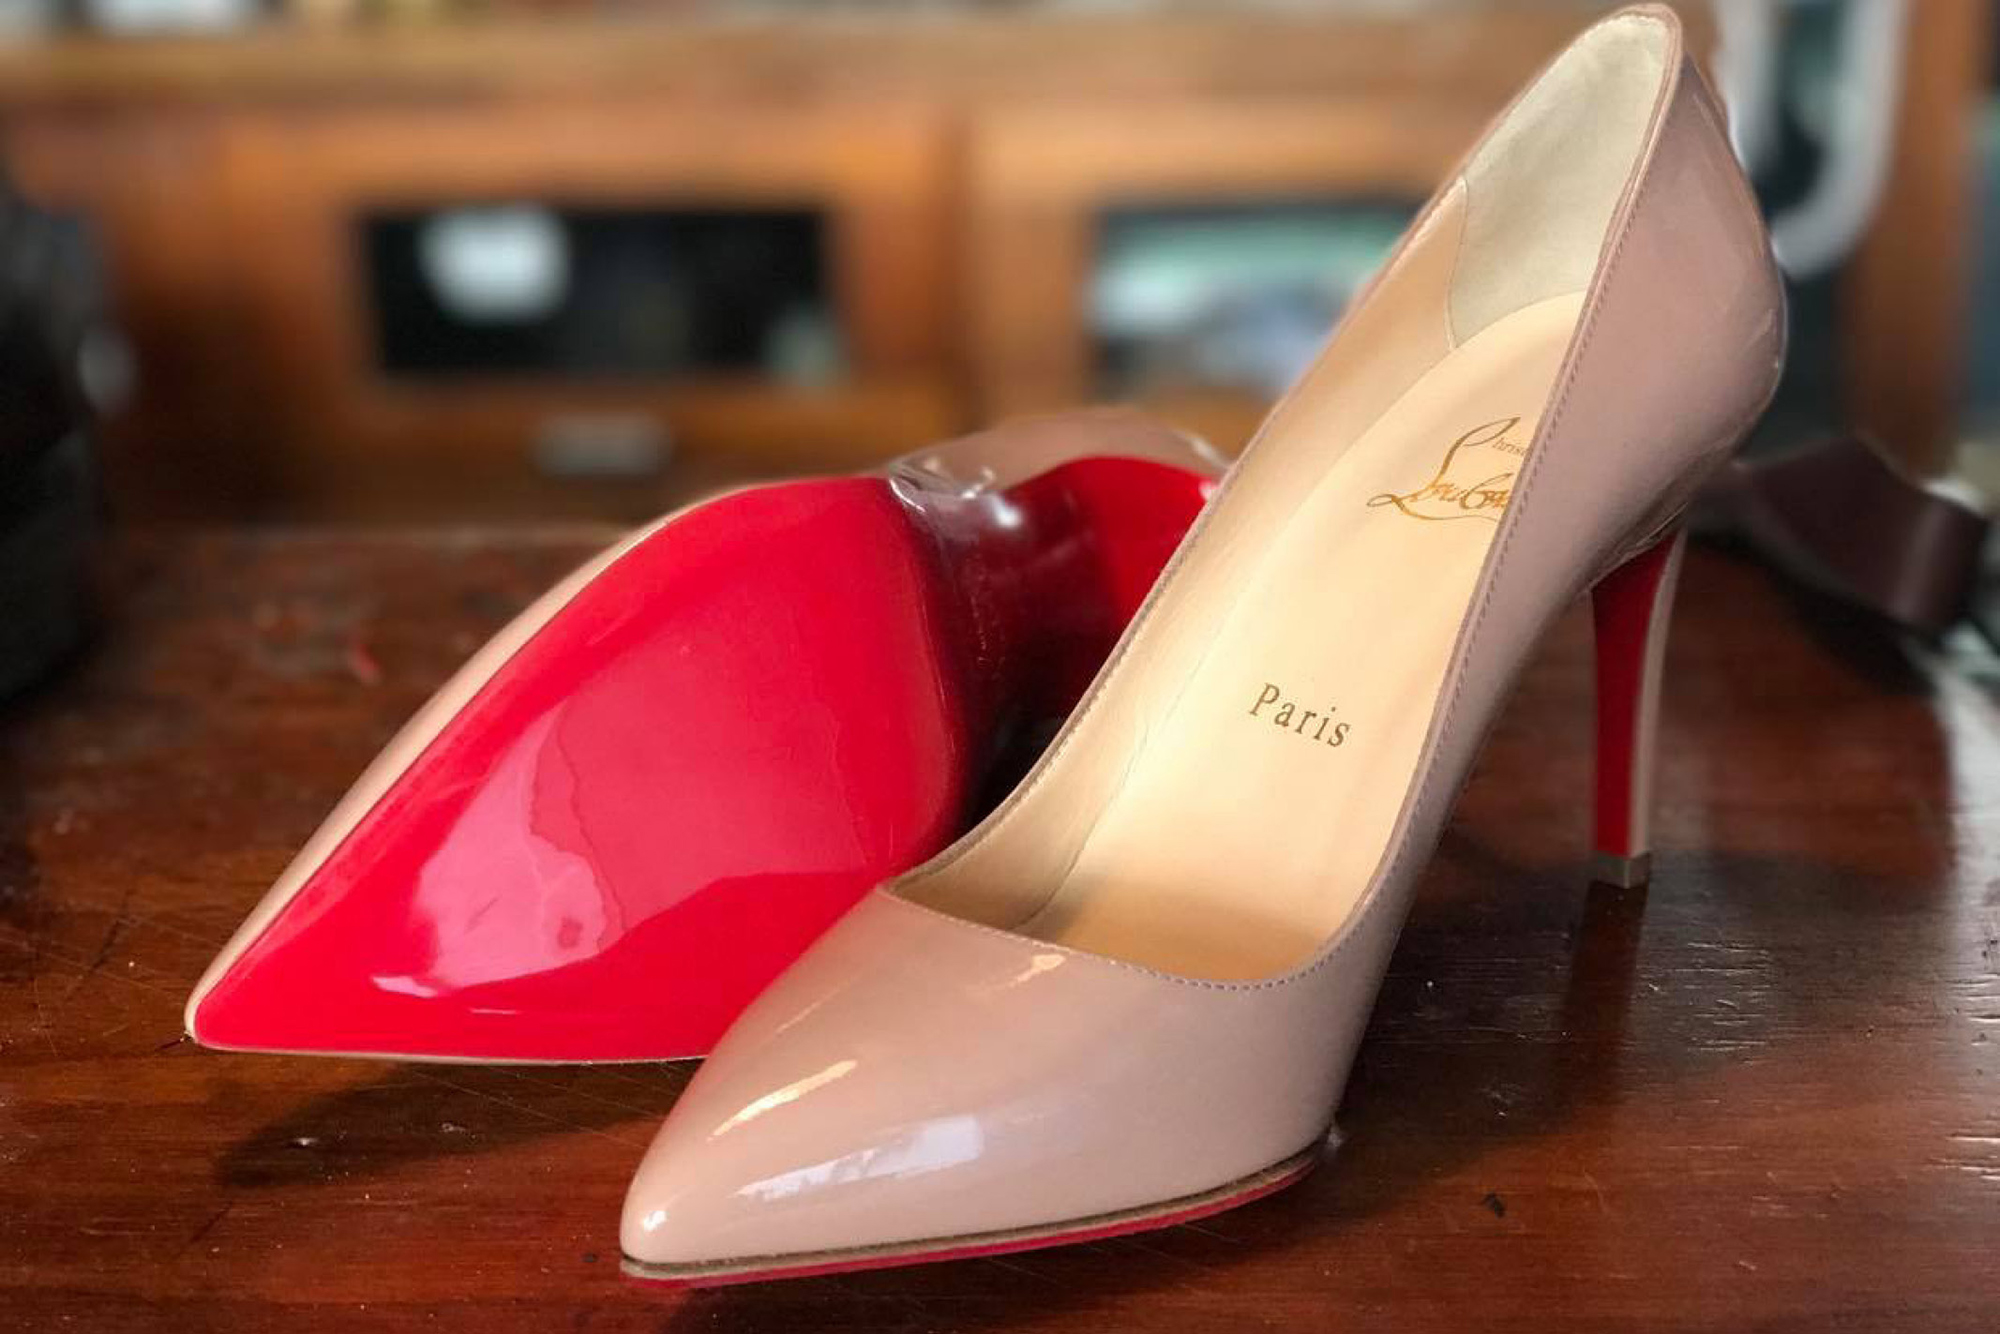 Christian Louboutin Red Soles | Stay